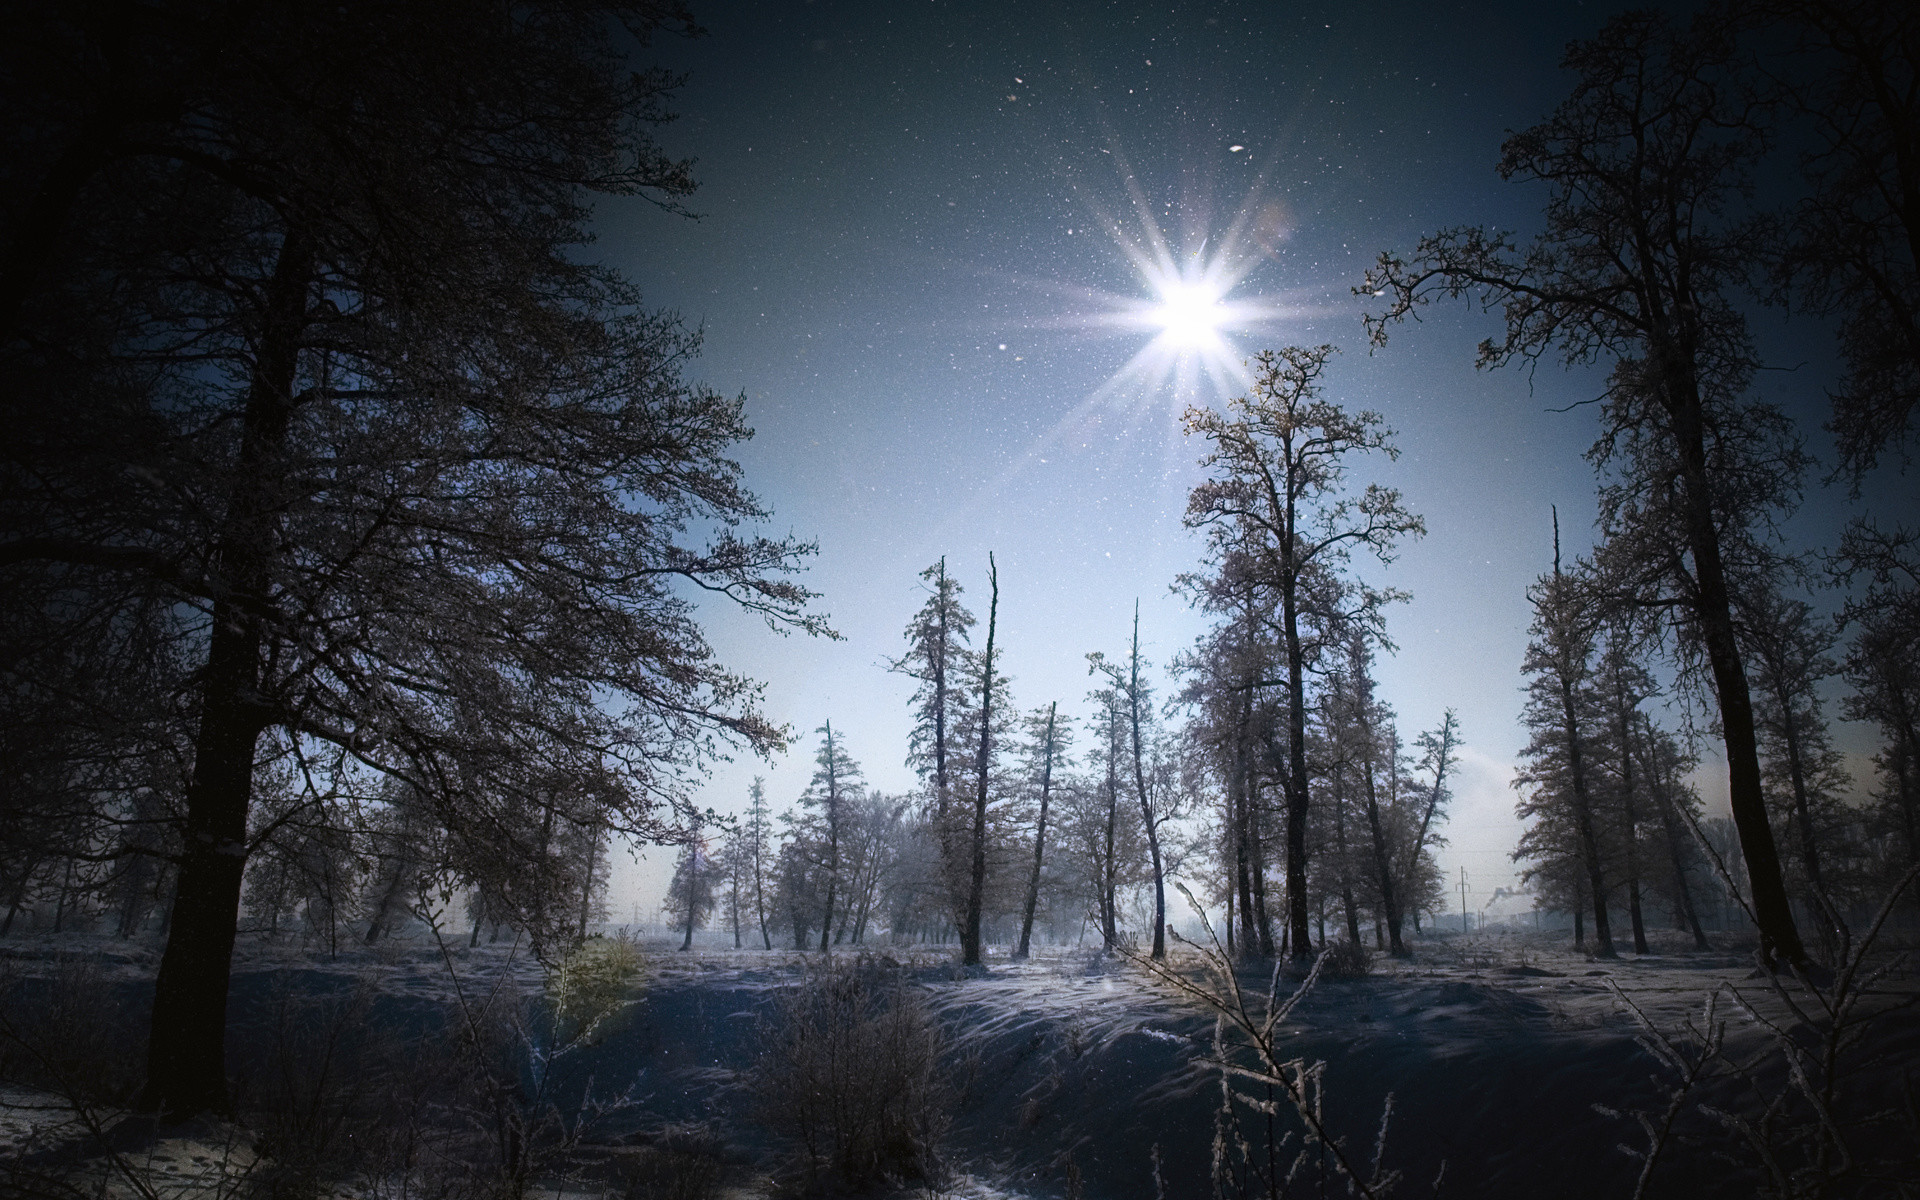 Flakes winter snow night moon light landscapes trees forest wallpaper      41476   WallpaperUP